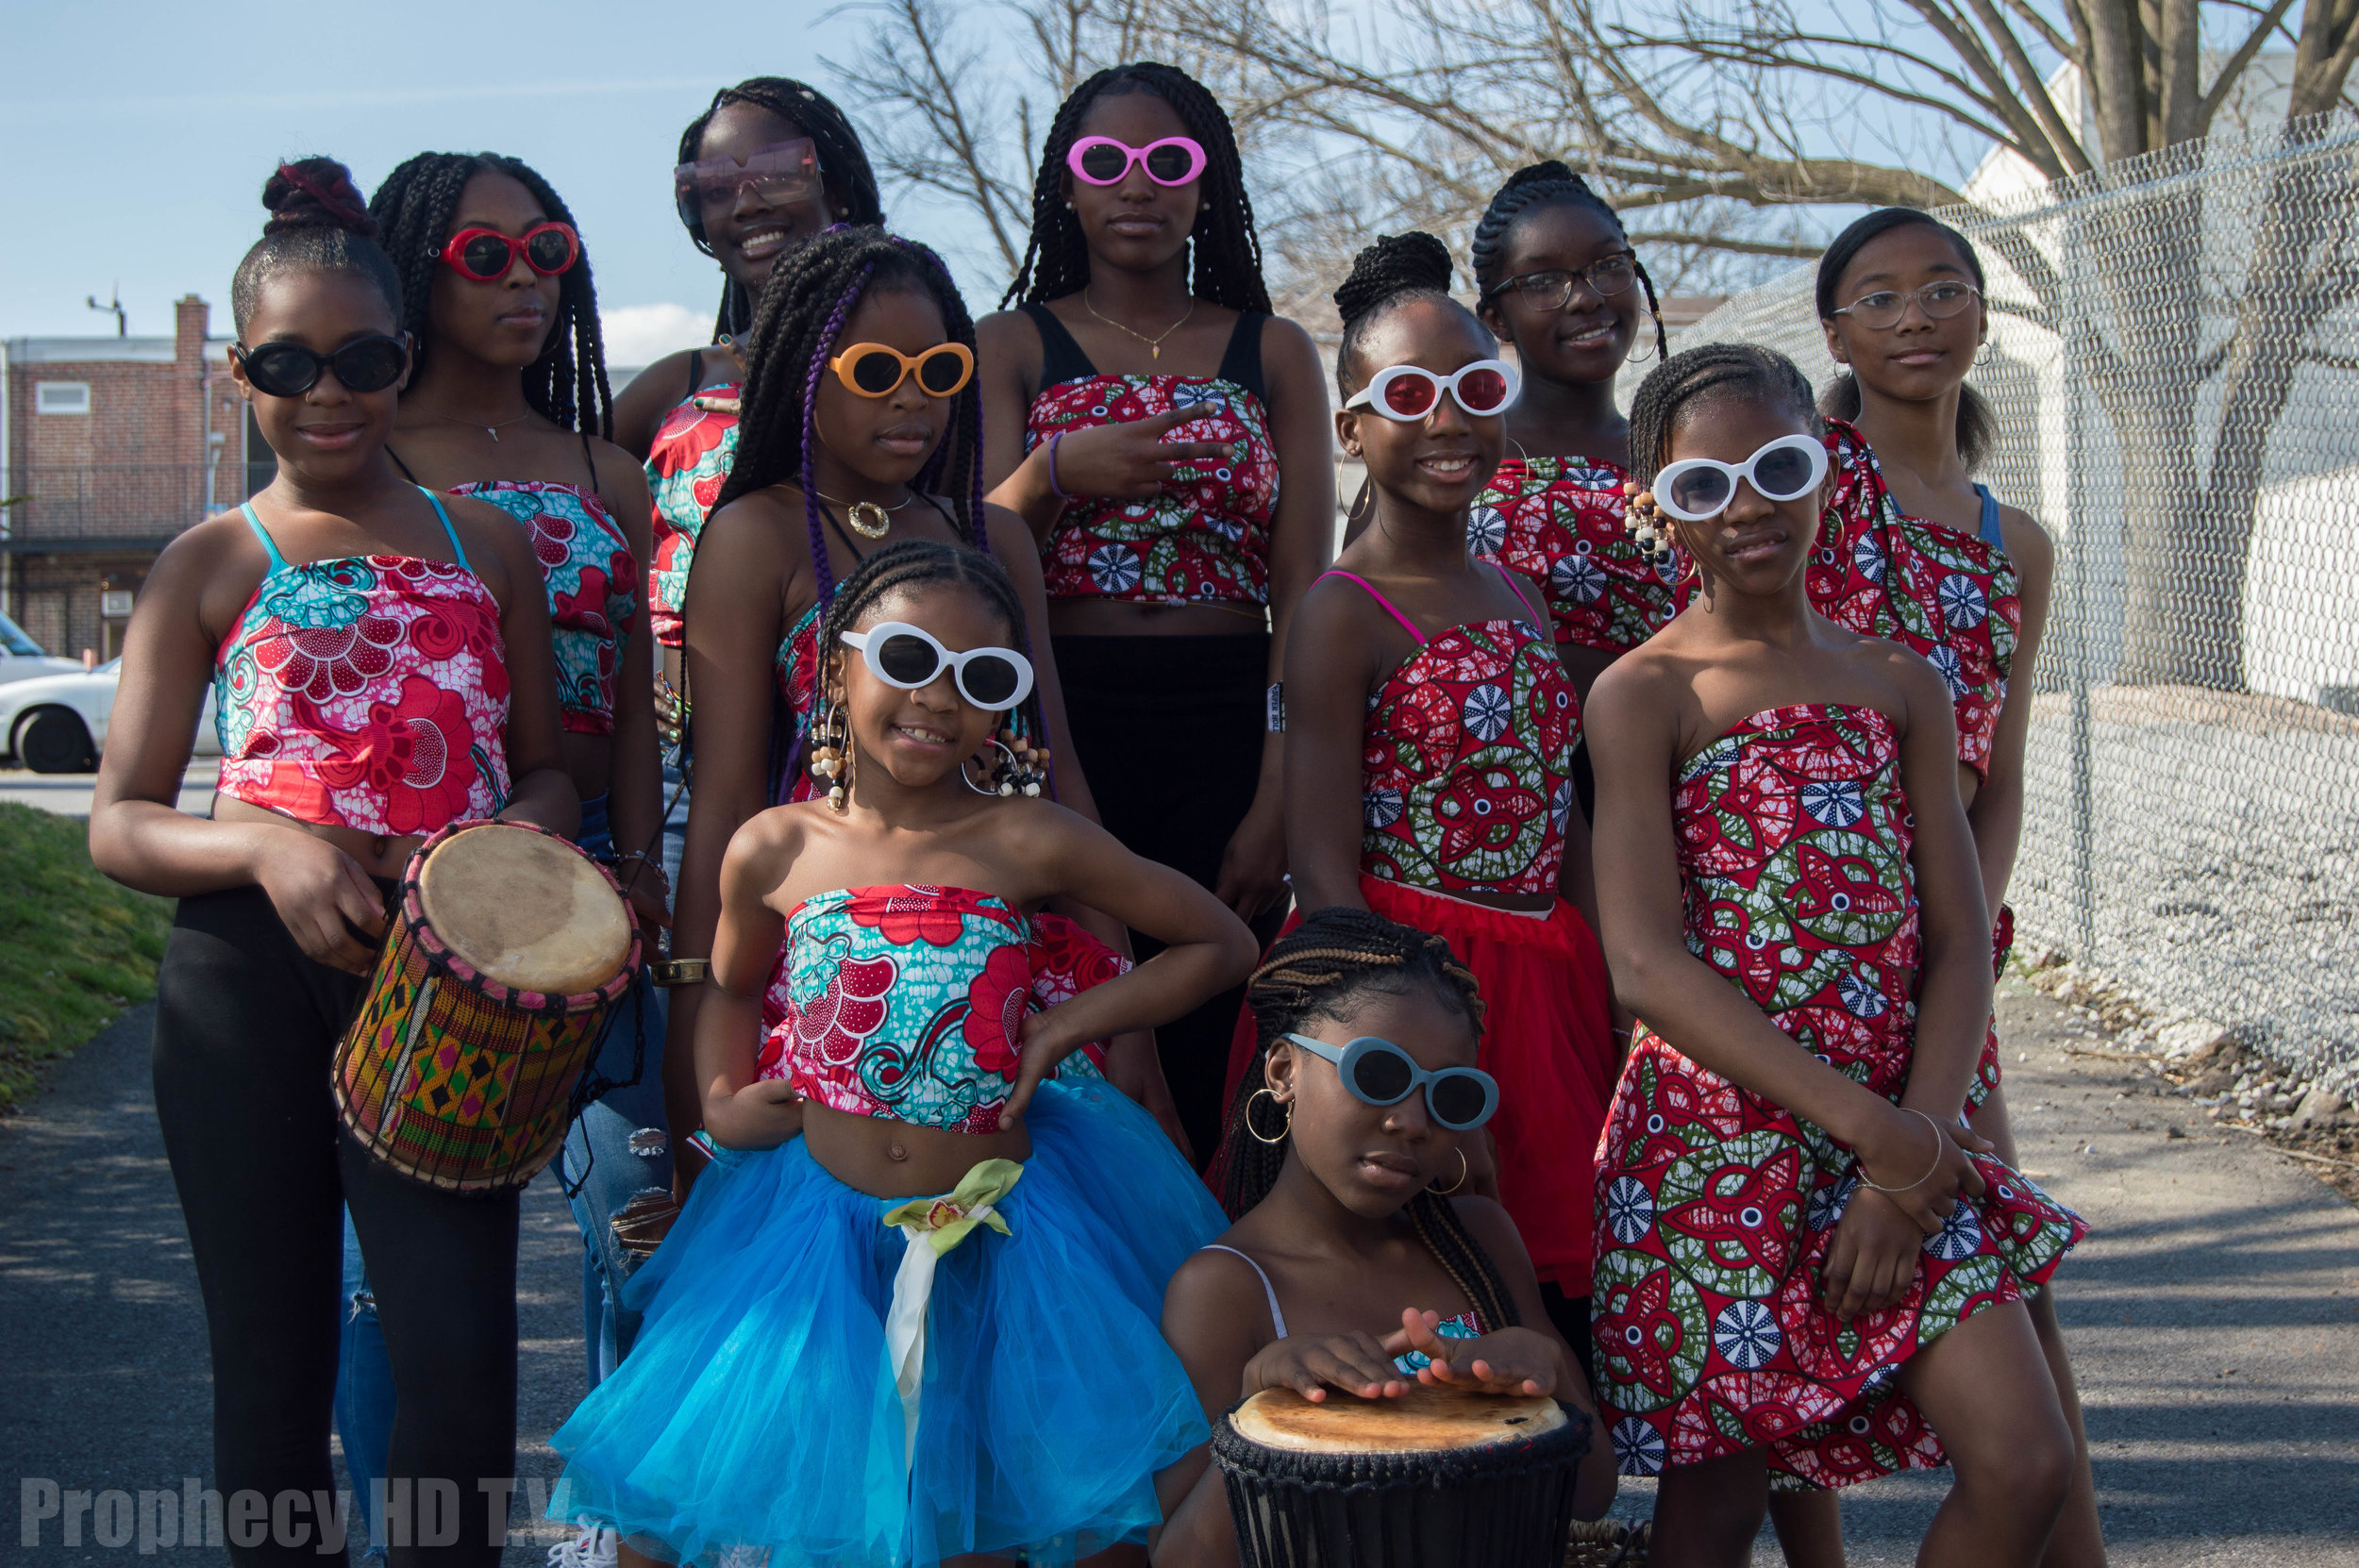 The Black Diamond Allstar Dance Team has been in existence for over 10 years in the Philadelphia/Delaware county/Tristate areas. The mission of this team is to EXPLORE AFRICAN CULTURE THROUGH DANCE.